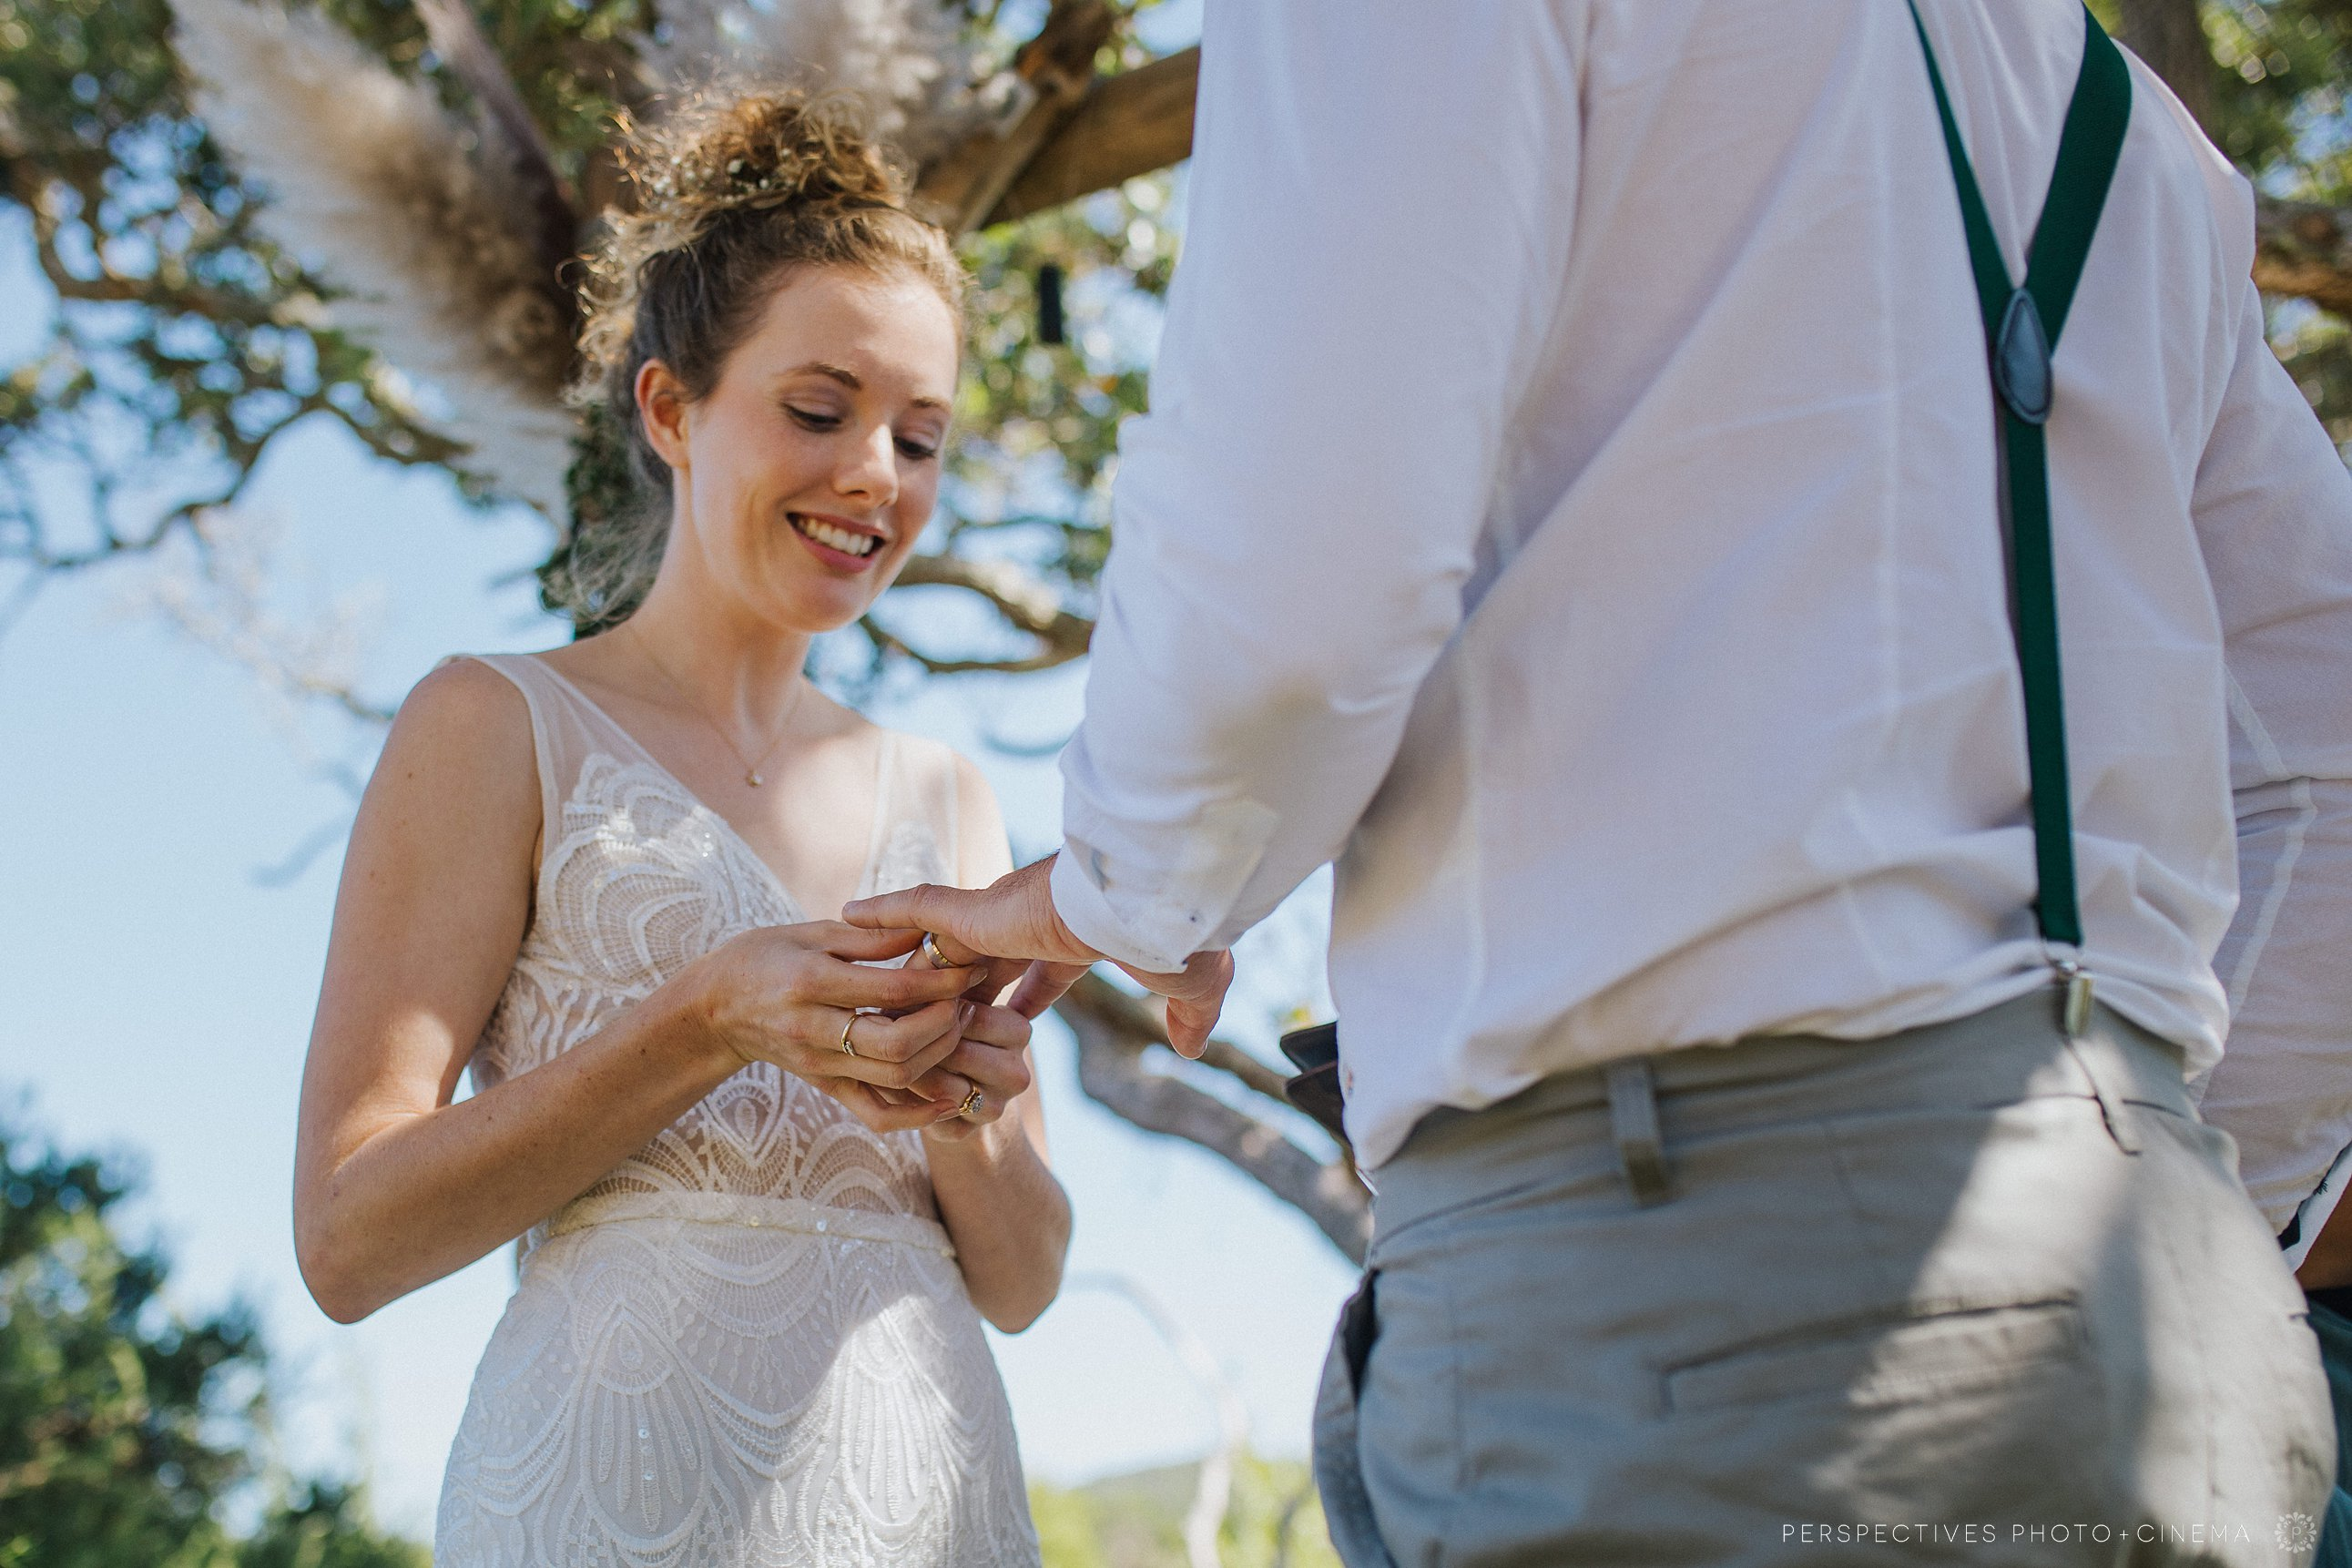 Bride putting on groom's ring in Coromandel wedding ceremony